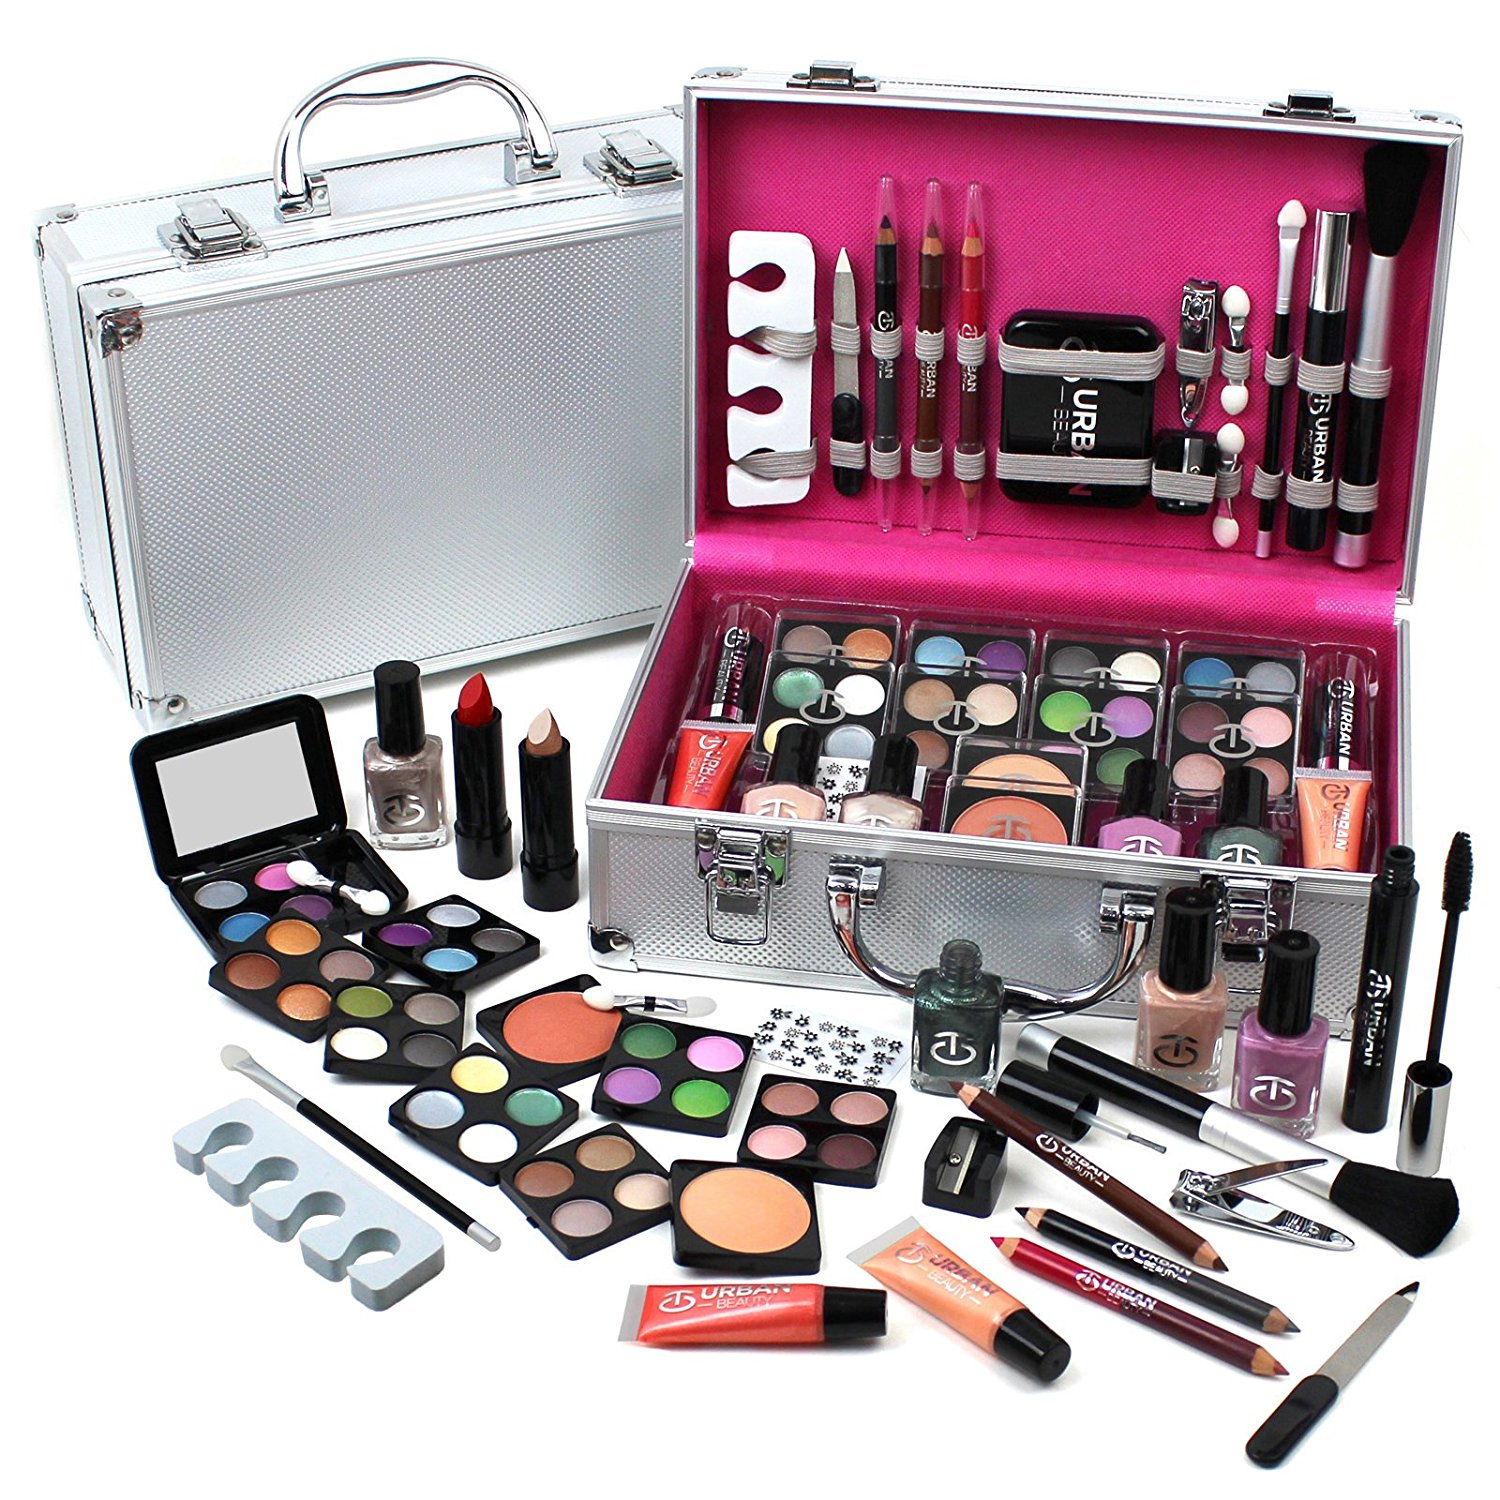 Details about Urban Beauty Make Up Set & Vanity Case, 60pcs, Cosmetics Collection & Carry Box